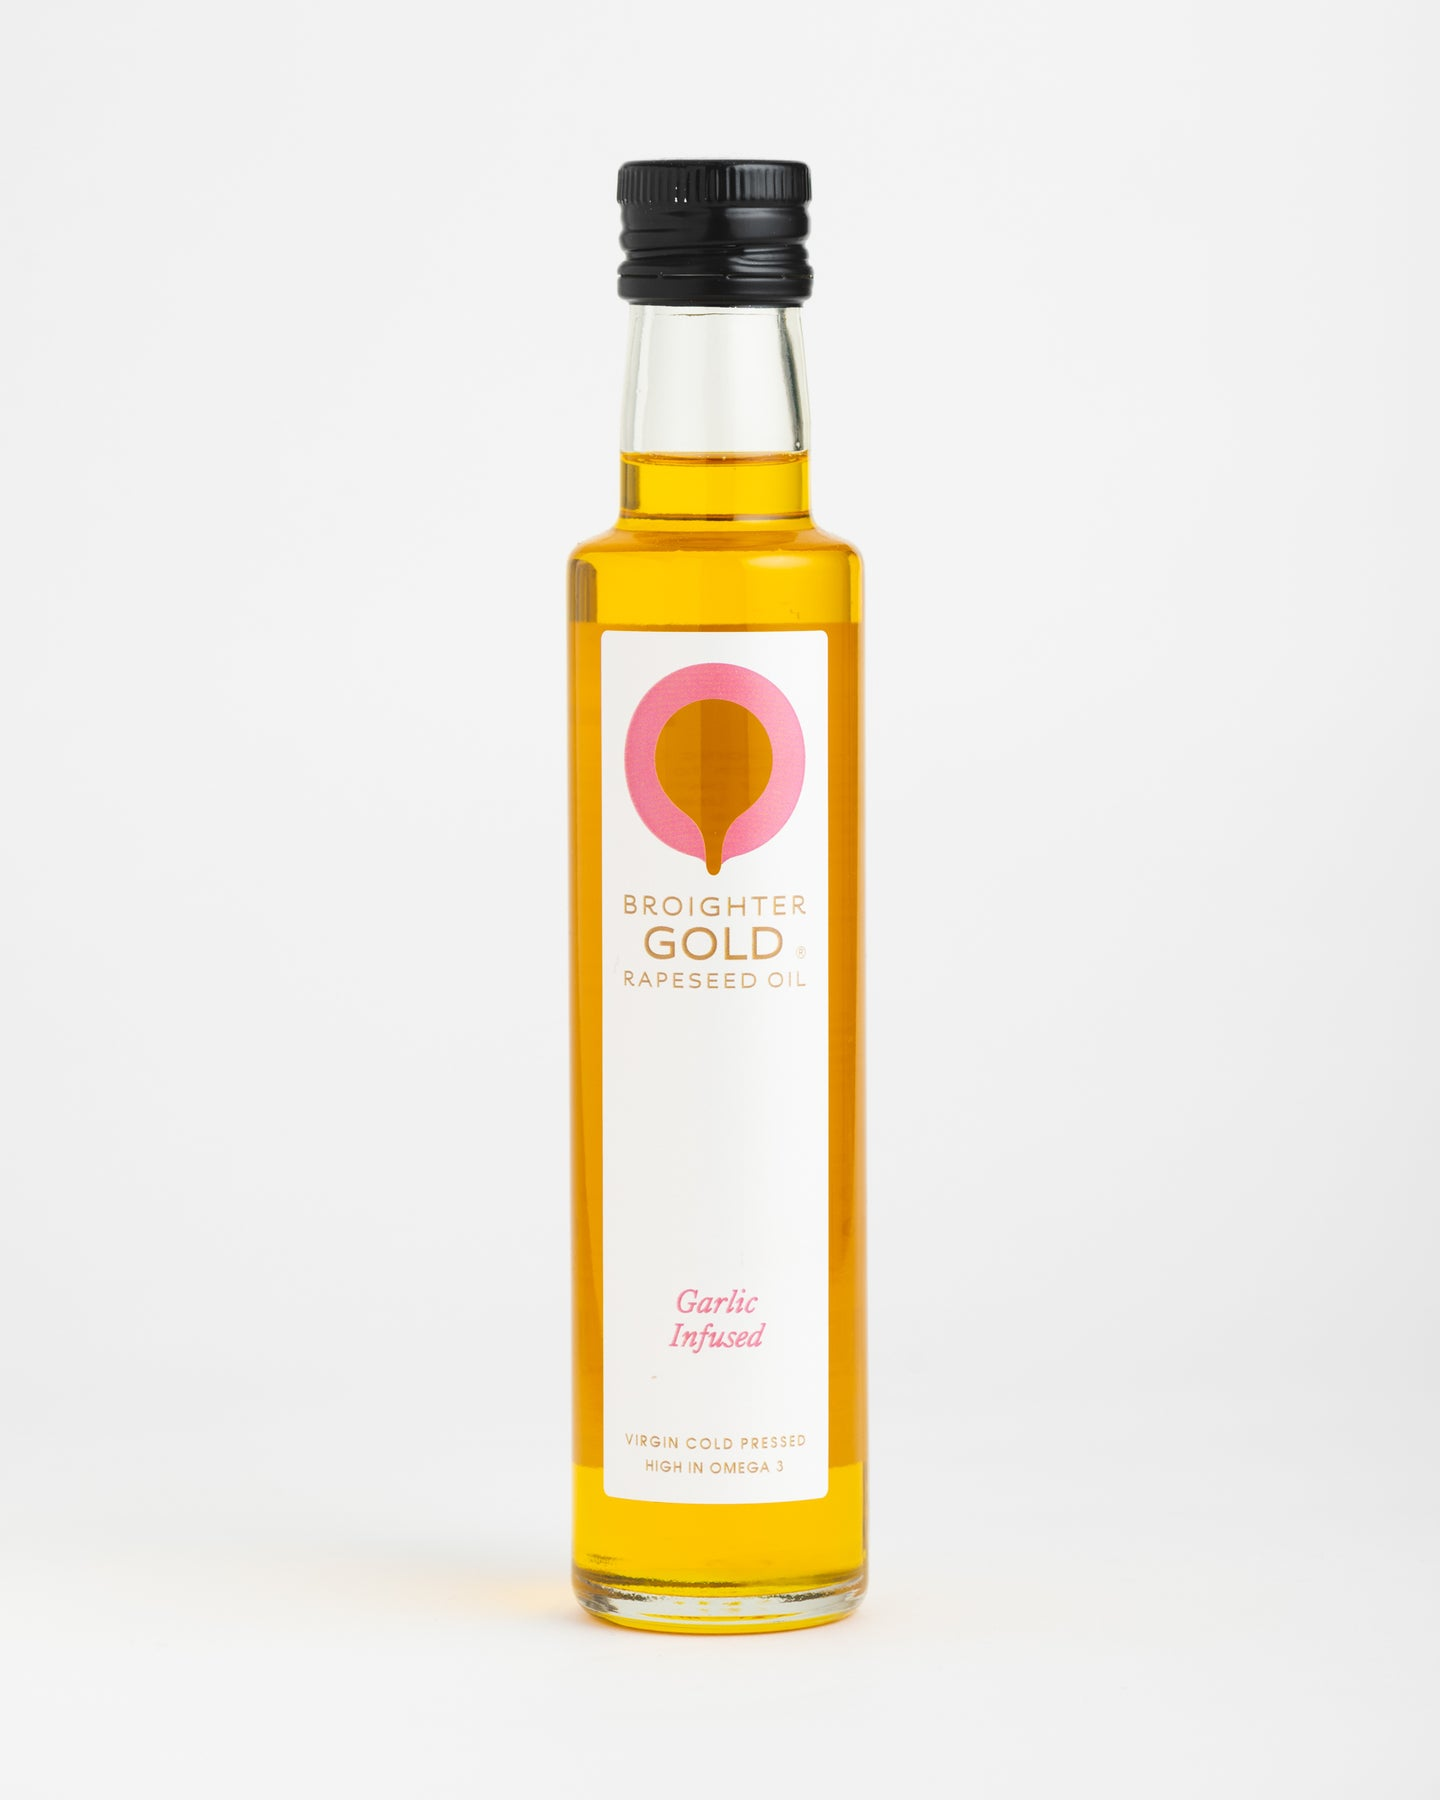 Broighter Gold - Garlic Infused Rapeseed Oil